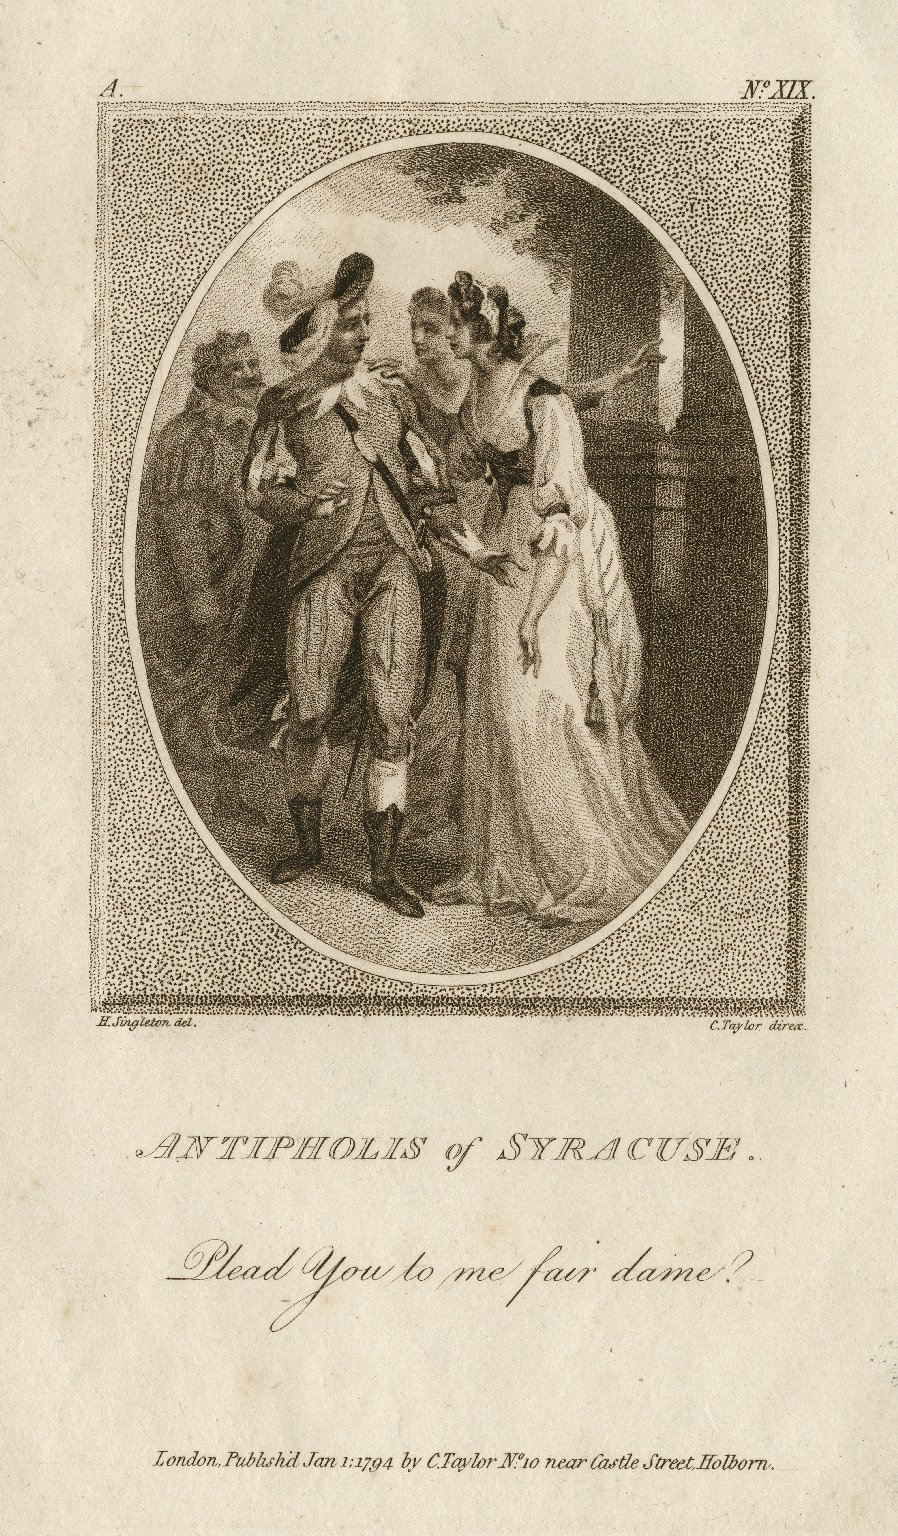 Antipholis of Syracuse: Plead you to me, fair dame? [Comedy of errors, act II, scene 2] [graphic] / H. Singleton, del. ; C. Taylor, direx.